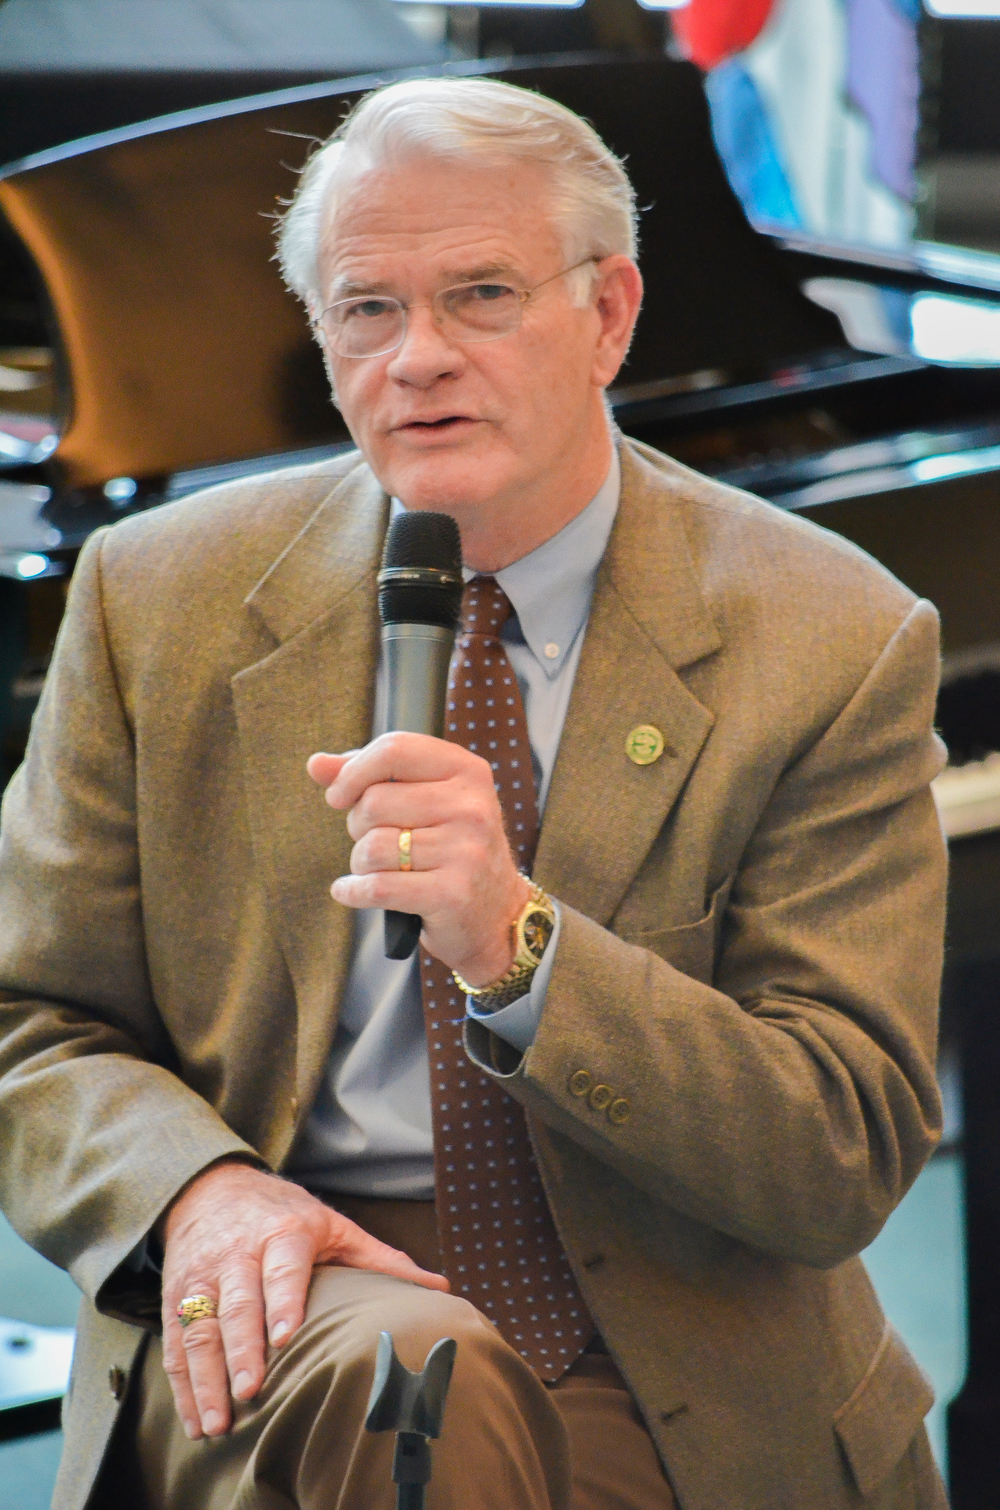 Mayor Mark Luttrell